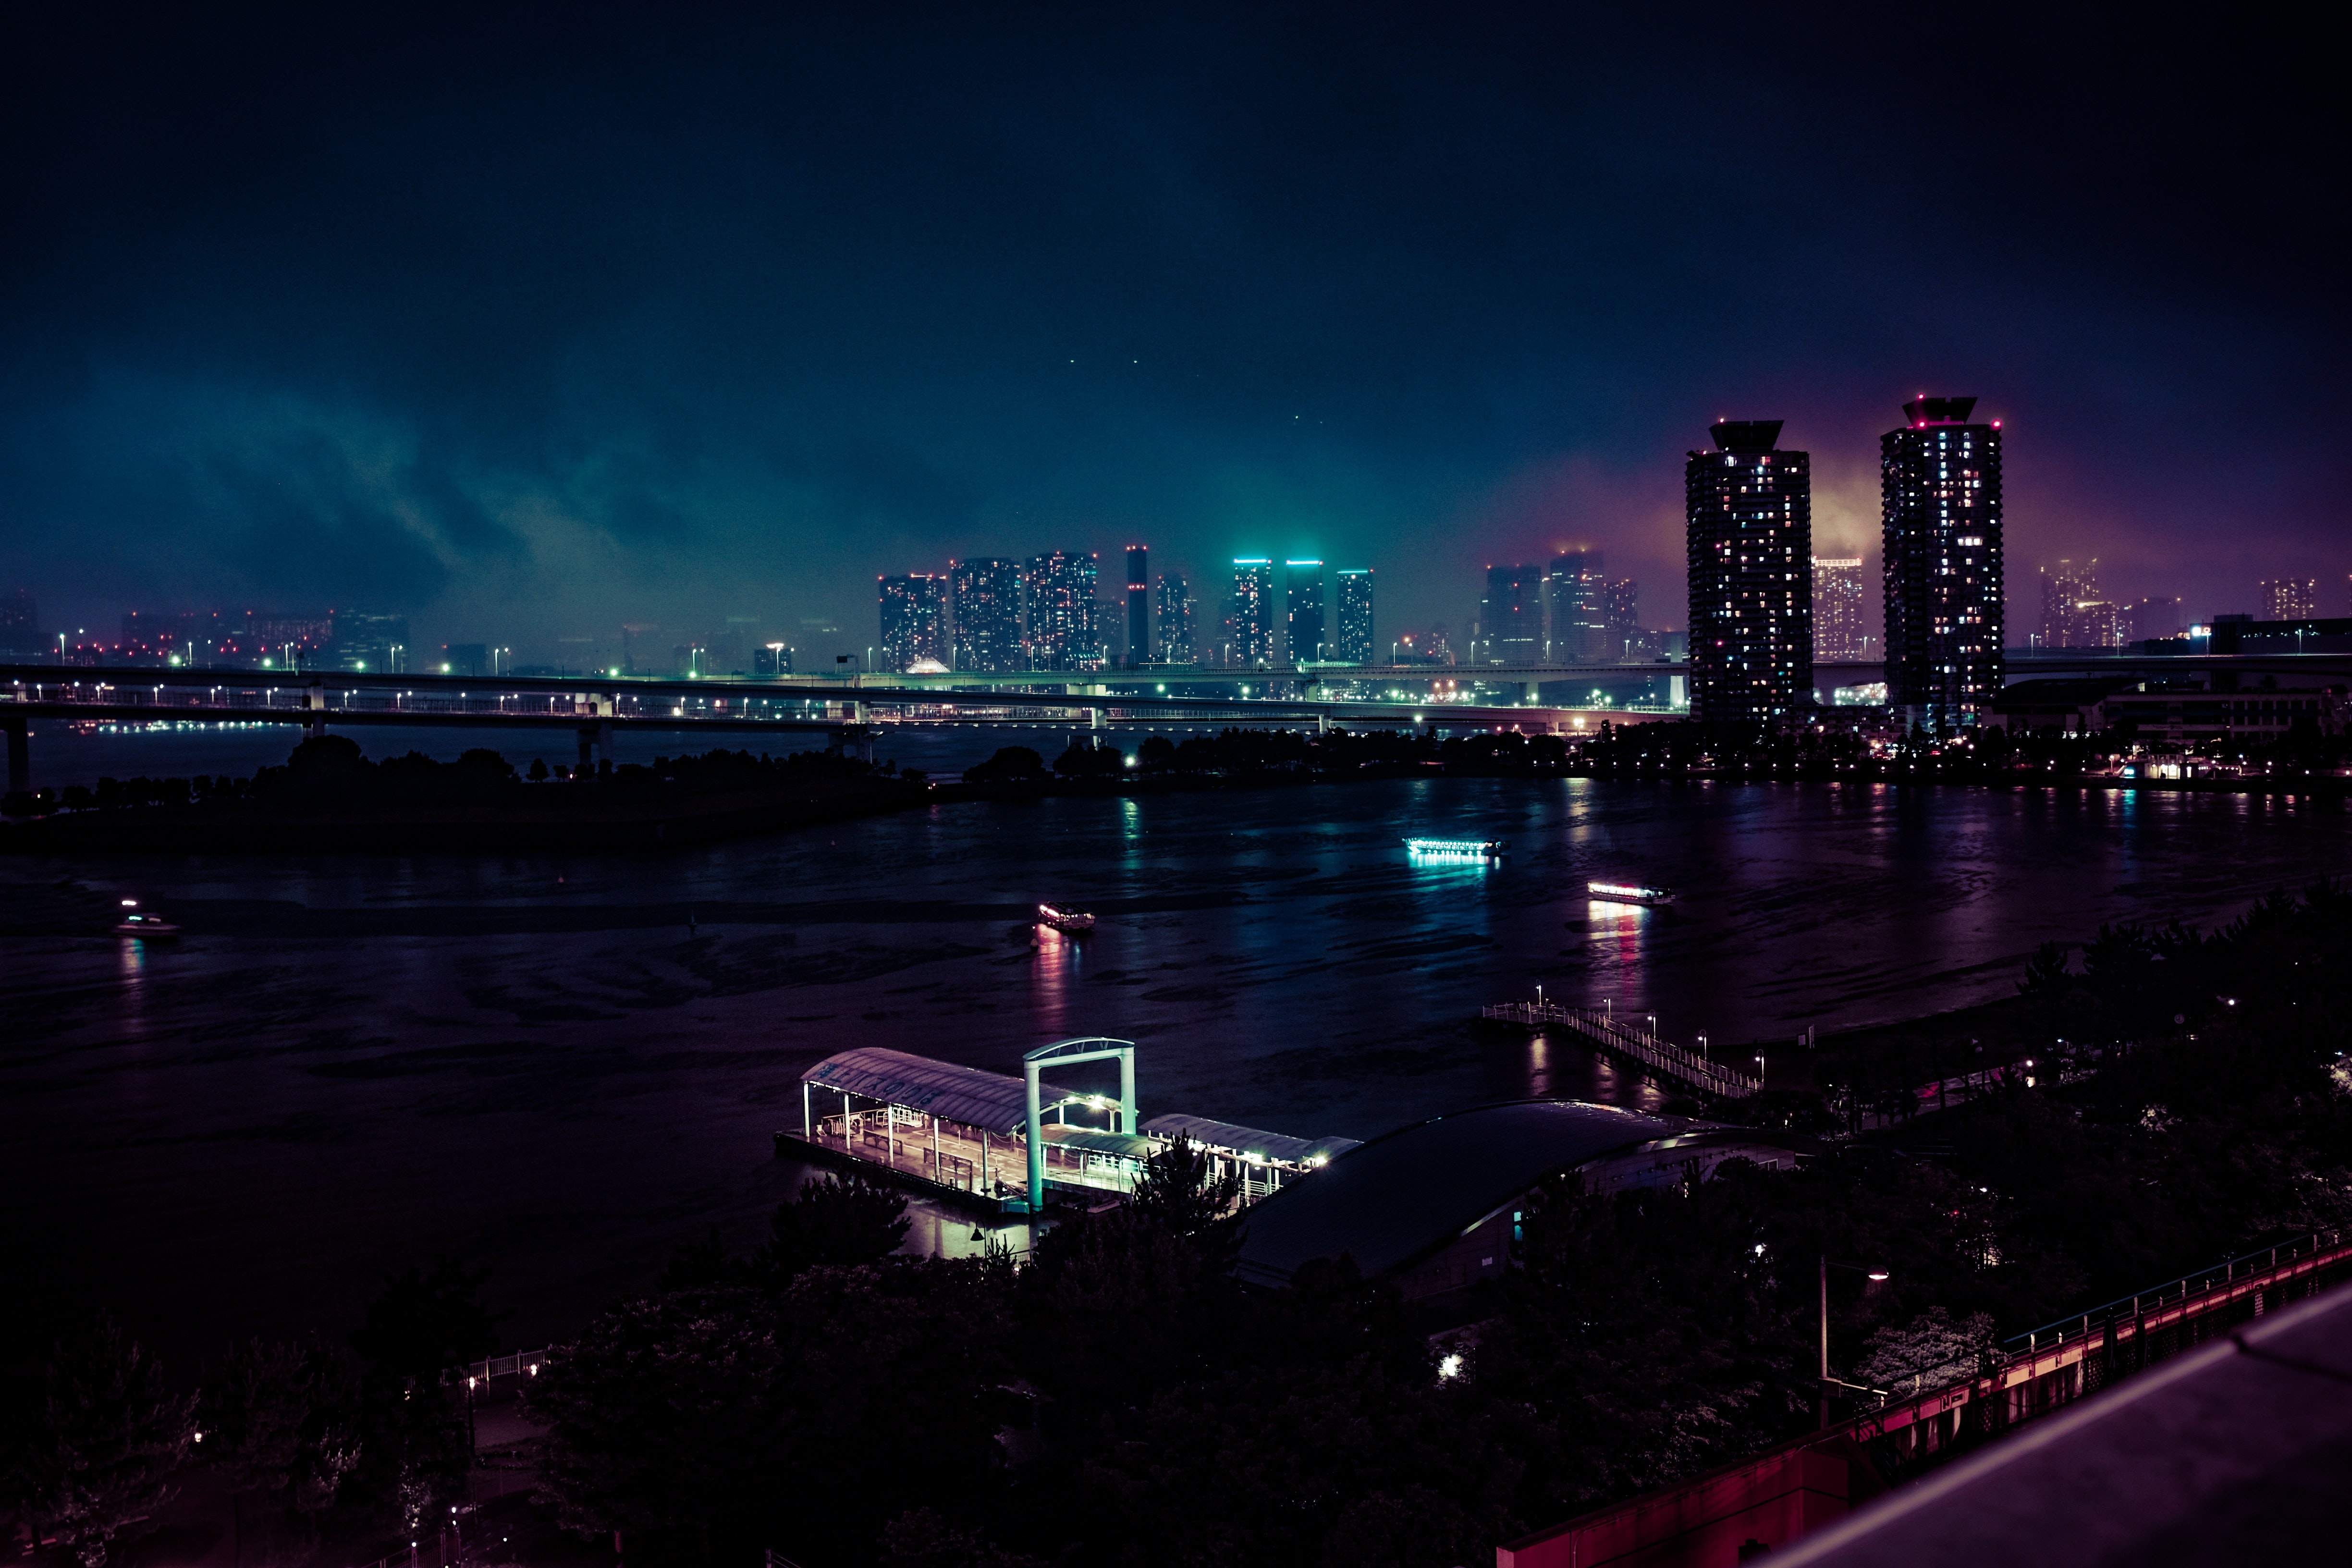 bridge above body of water near lightened buildings during night time